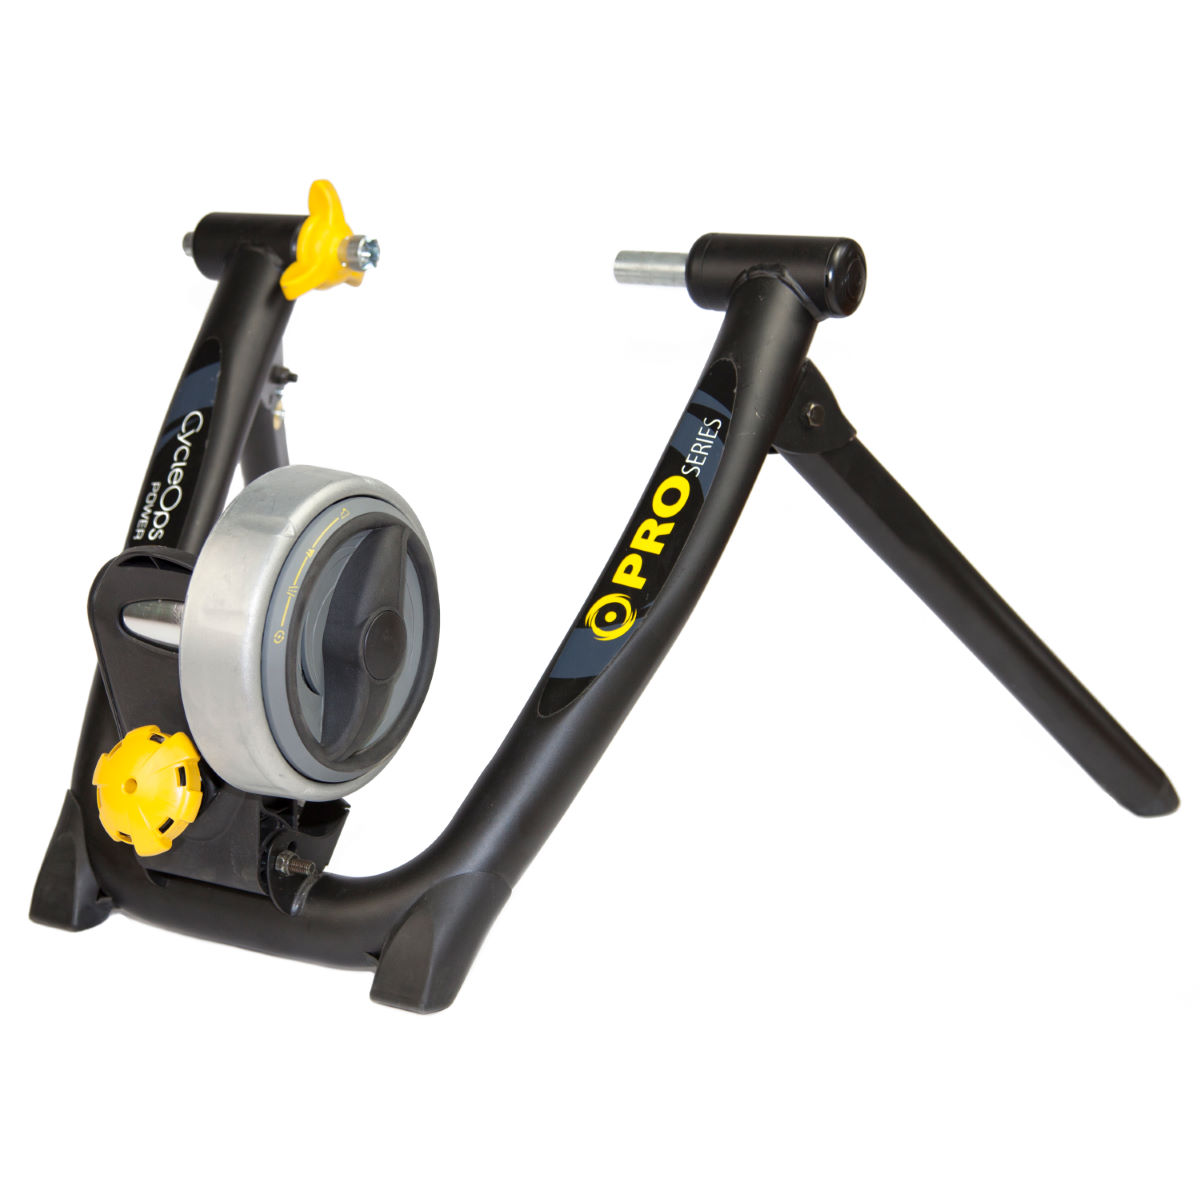 CycleOps Super Magneto Pro Turbo Trainer